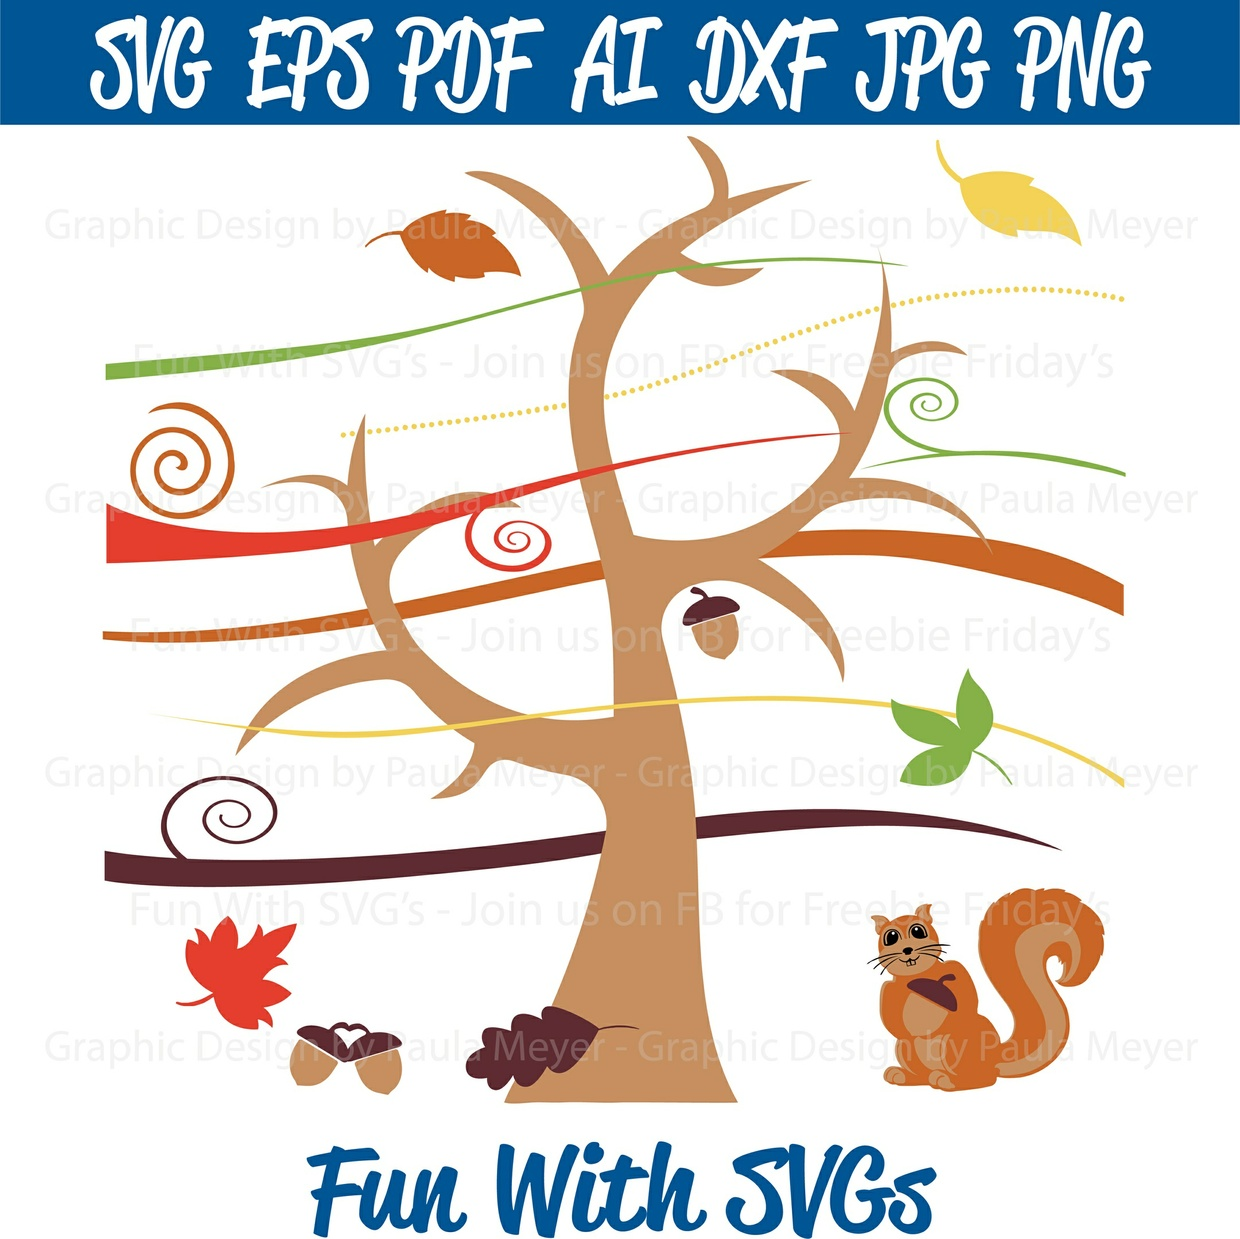 Harvest Oak Tree, Acorns, Leaves, Wind and Squirrel - Fun With SVGs - Printable, Cut-able, Editable